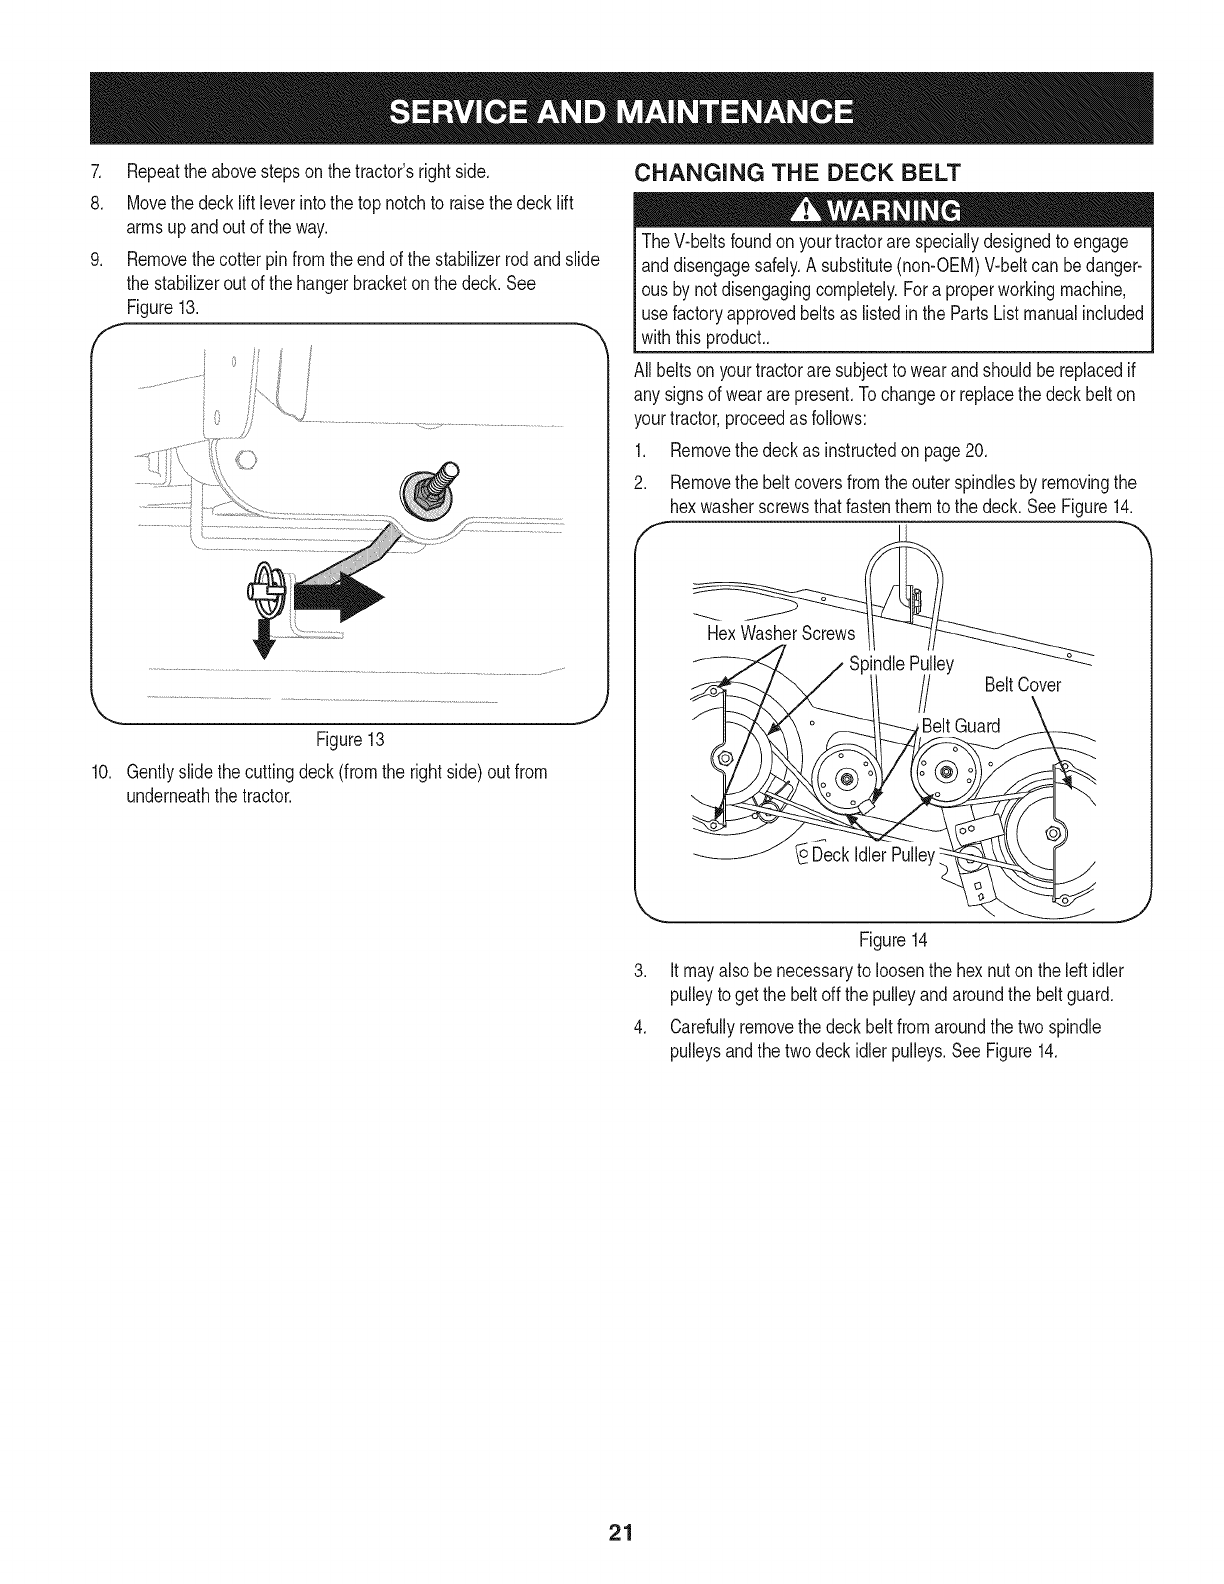 Page 21 of Craftsman Lawn Mower 247.28980 User Guide